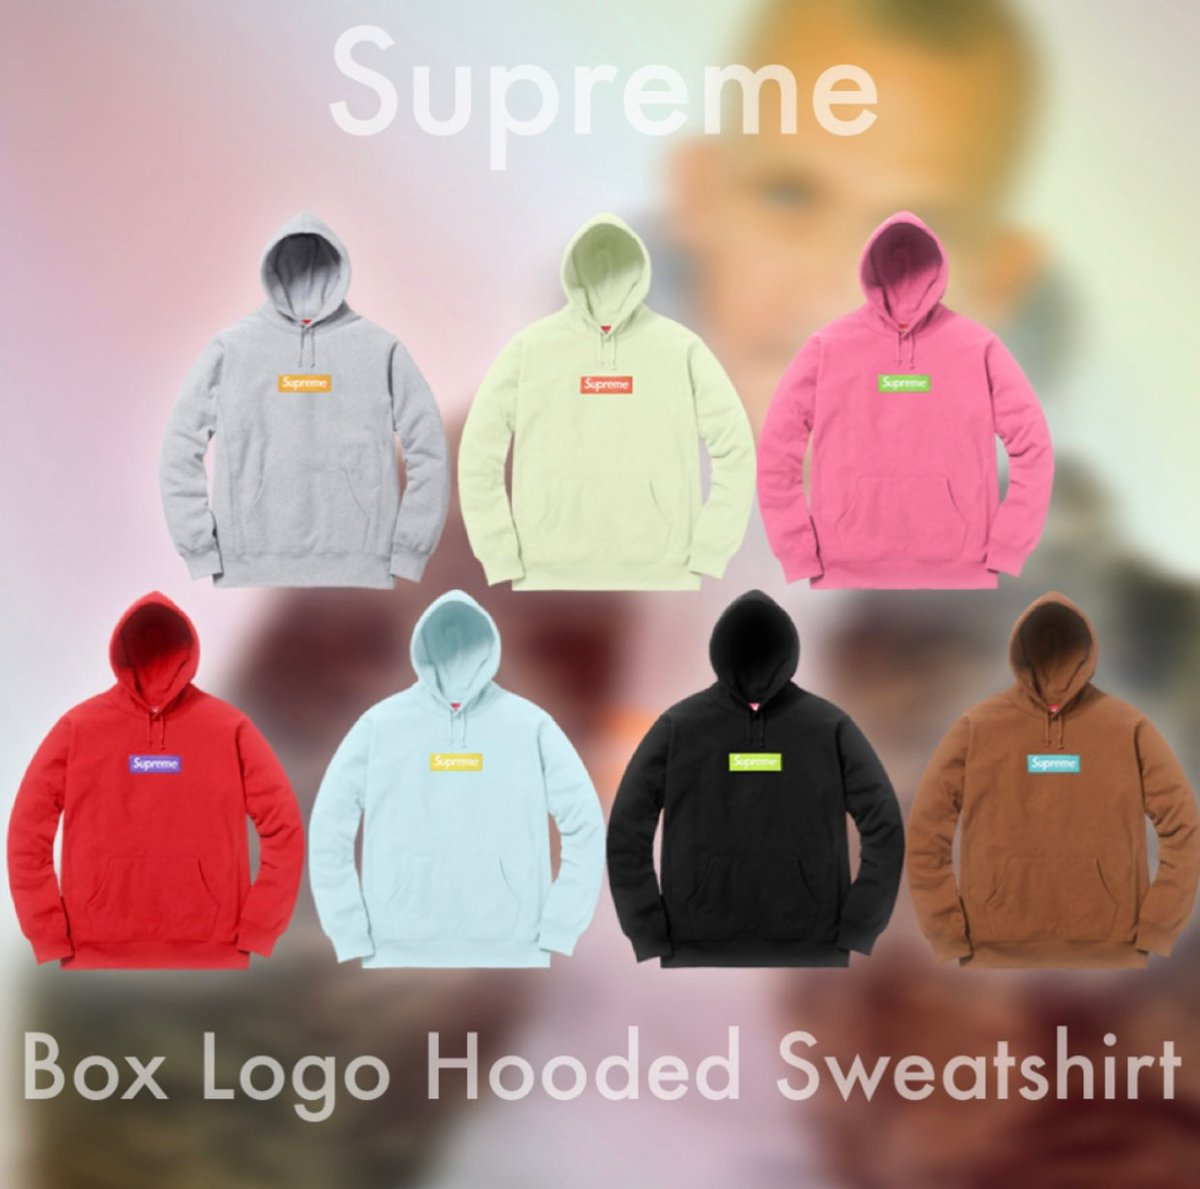 Supreme Fall Winter 2017 Box Logo Hoo Confirmed For December 14th In And Online You Ll Want To Grab The Dashbot These